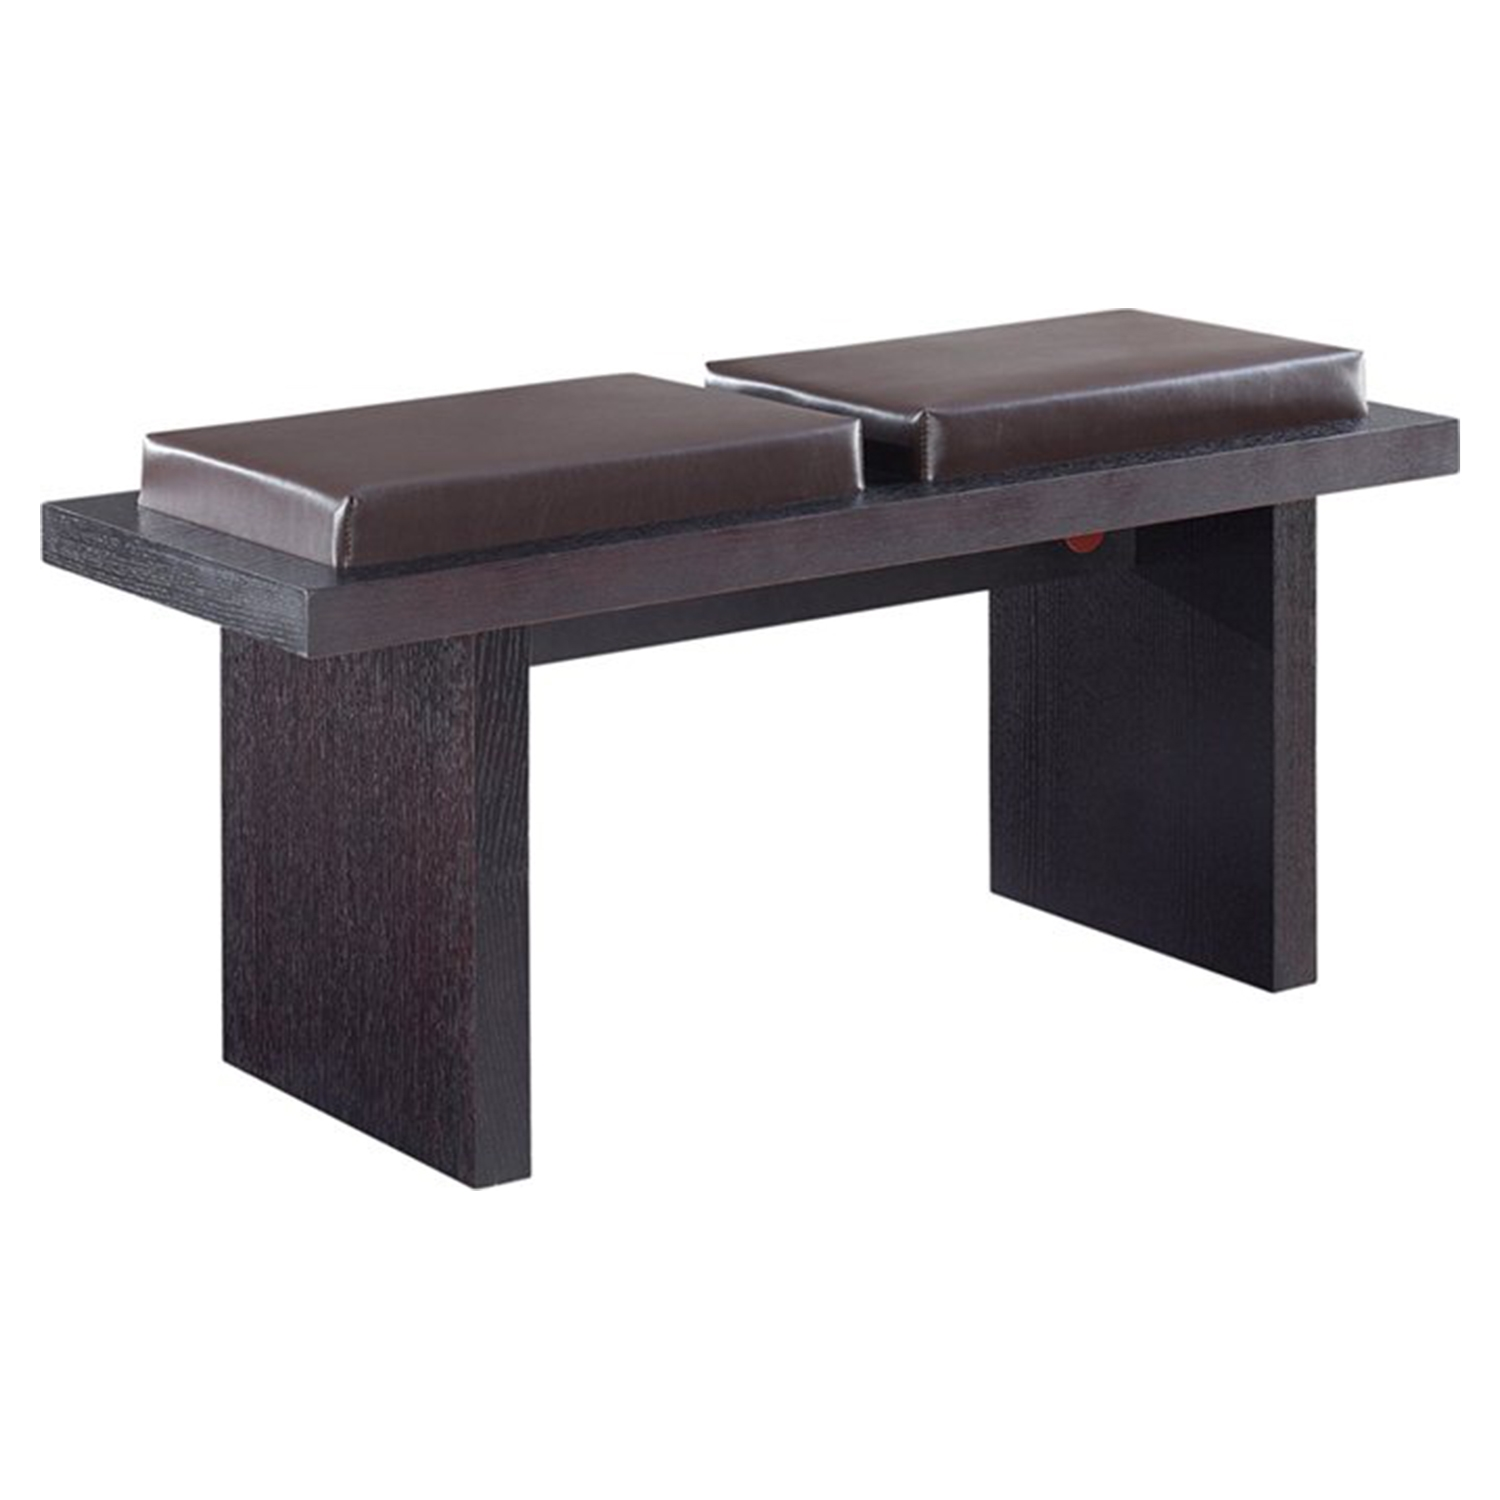 Tristan Bench in Brown Cushion Seat, Wenge Legs - GLO-DG020BN-CP001-M